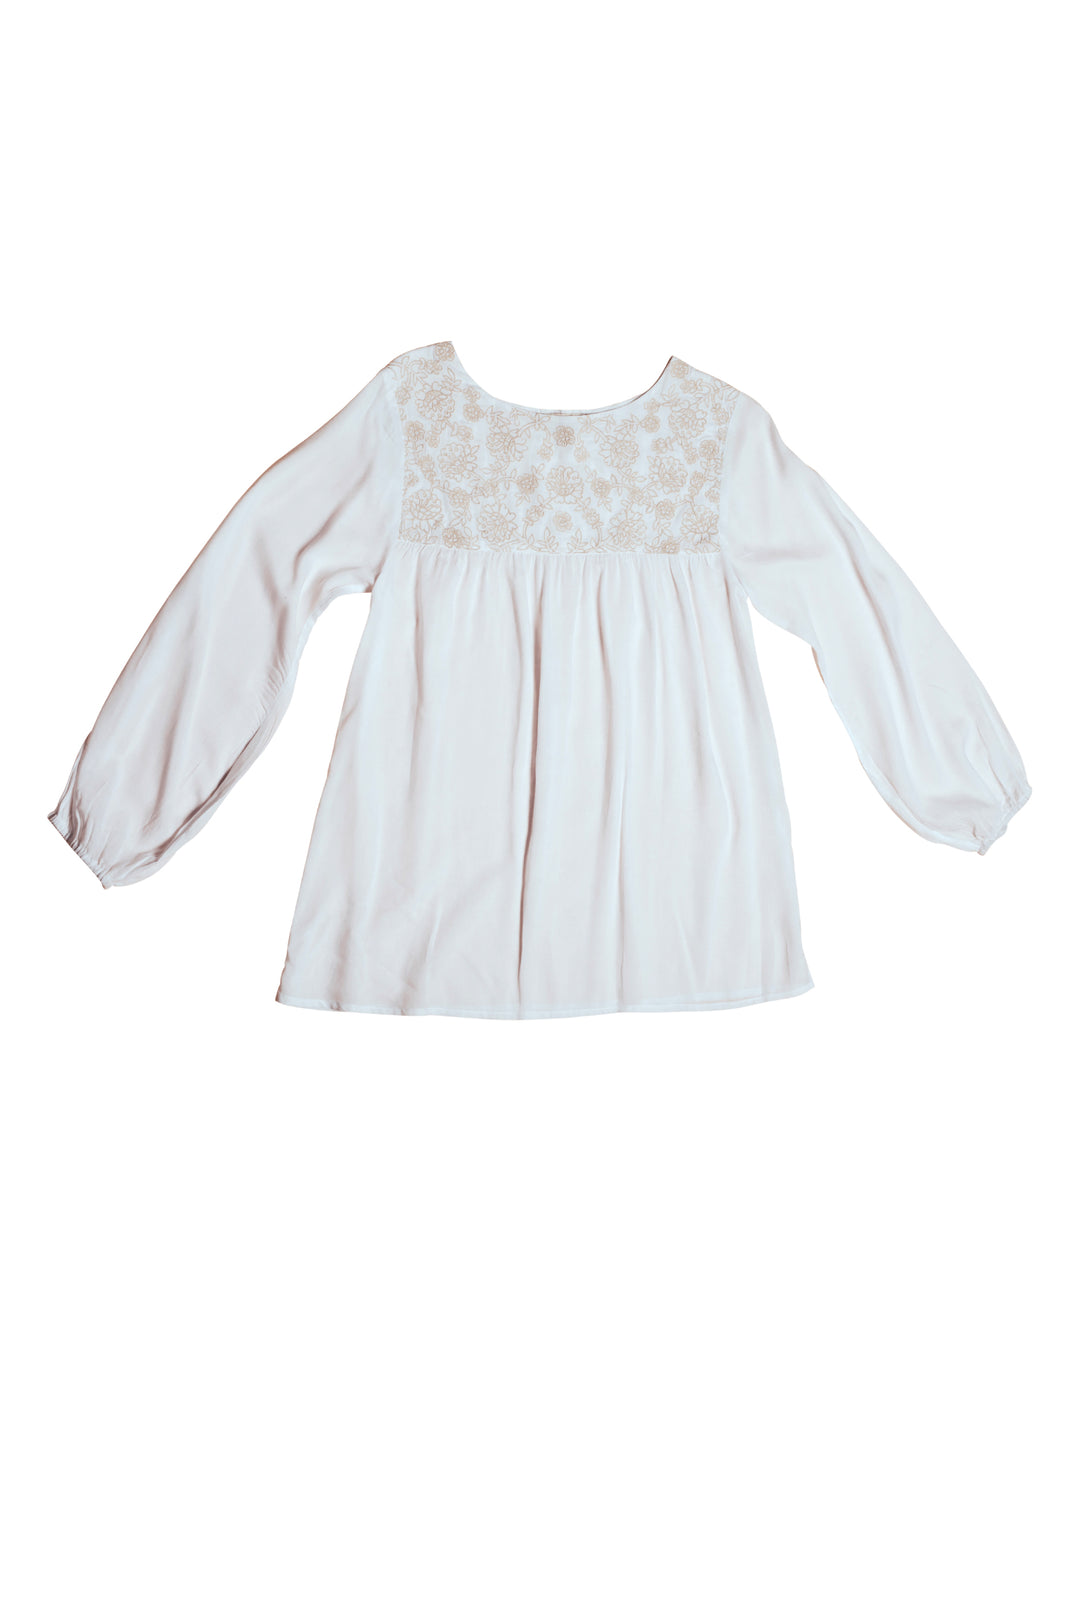 white embroidered artists smock